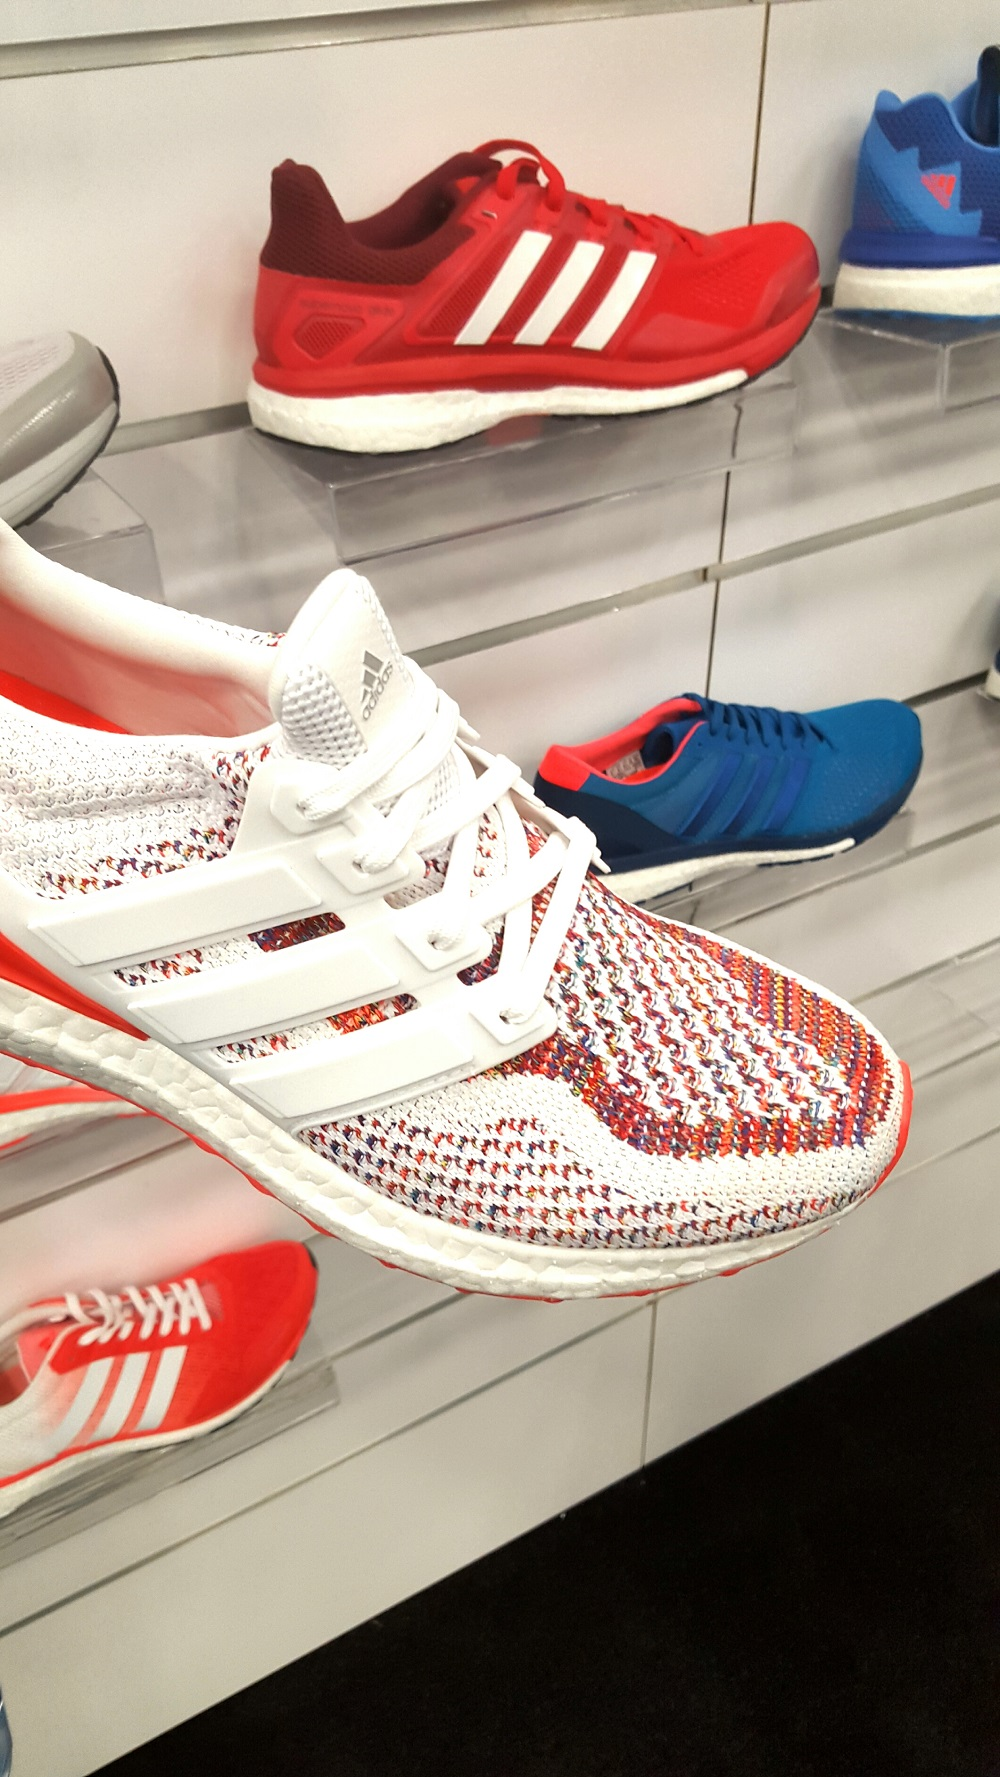 807cf0581e776 where can i buy adidas ultra boost multicolor white red 4 4bfc3 a2ccf